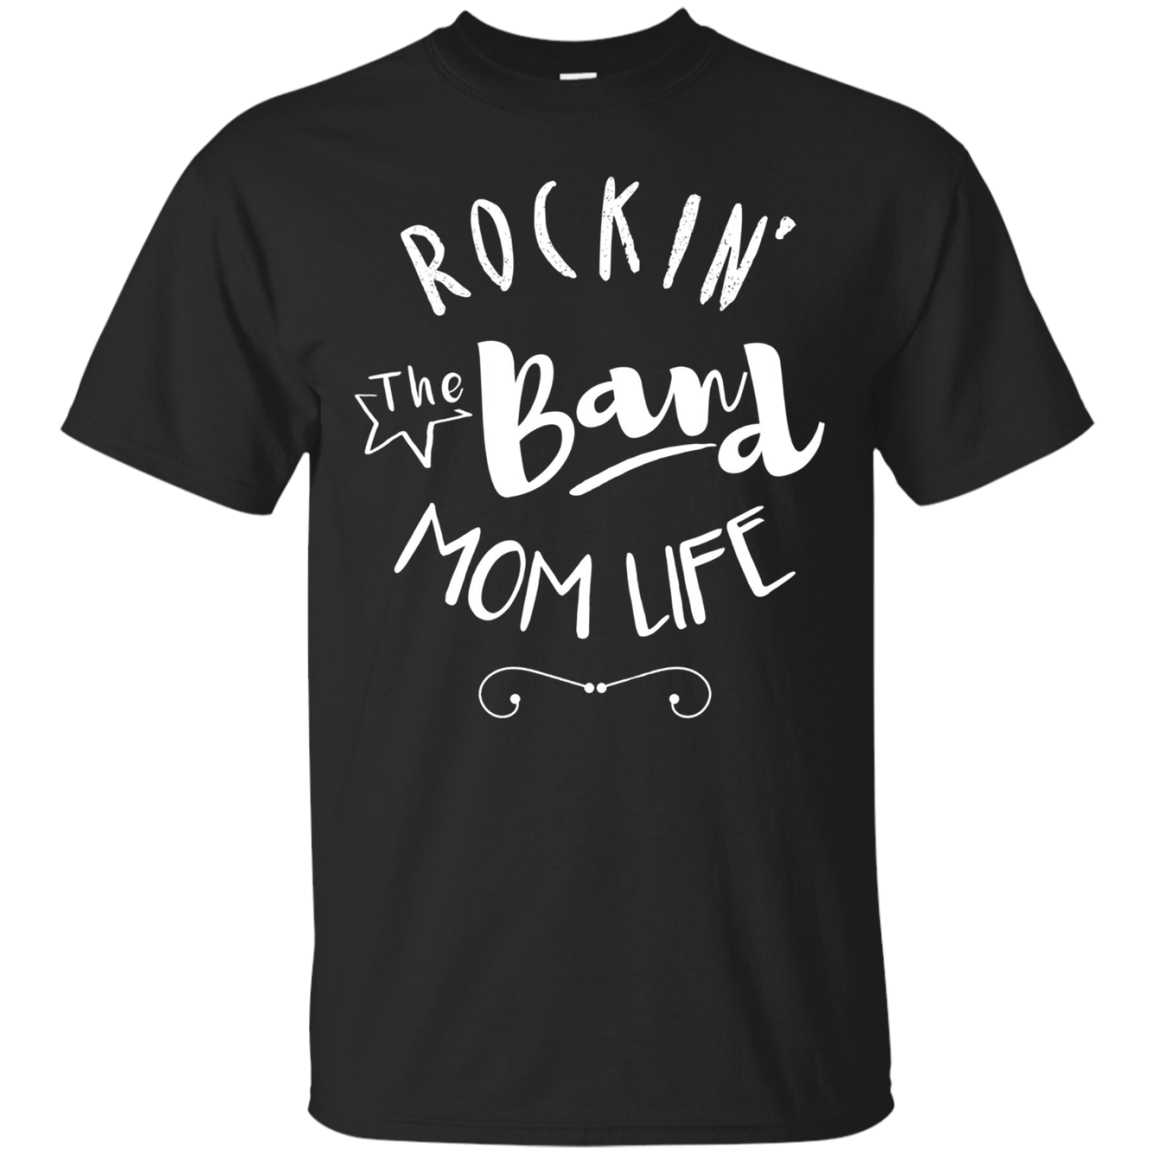 Rockin' The Band Mom Life Shirt Gift For Mother